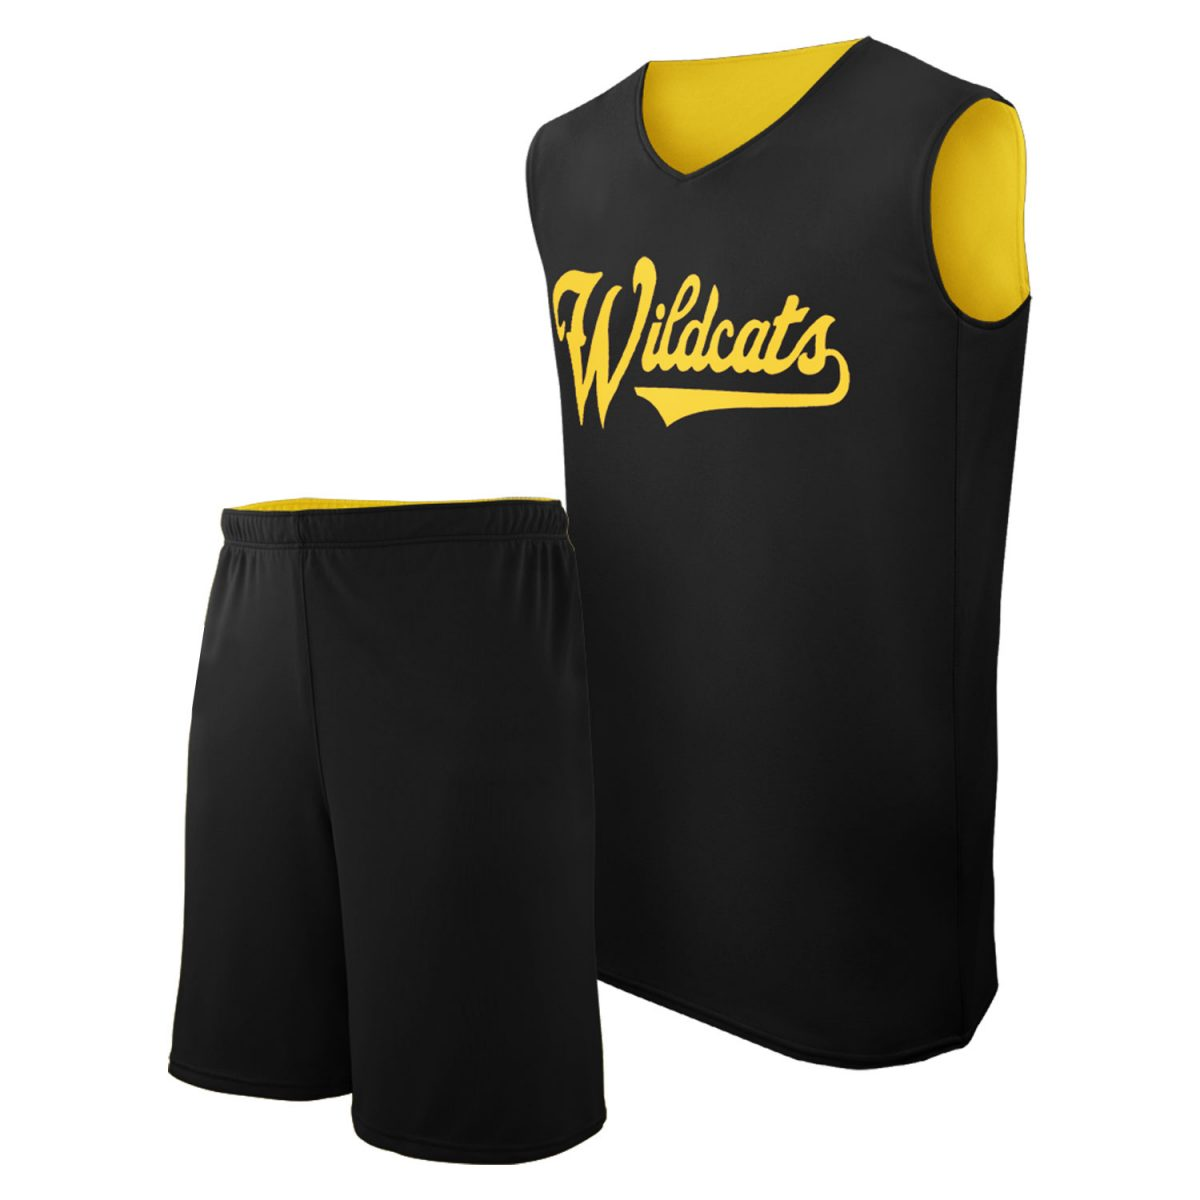 Boys Basketball Uniforms Manufacturers in Nagpur